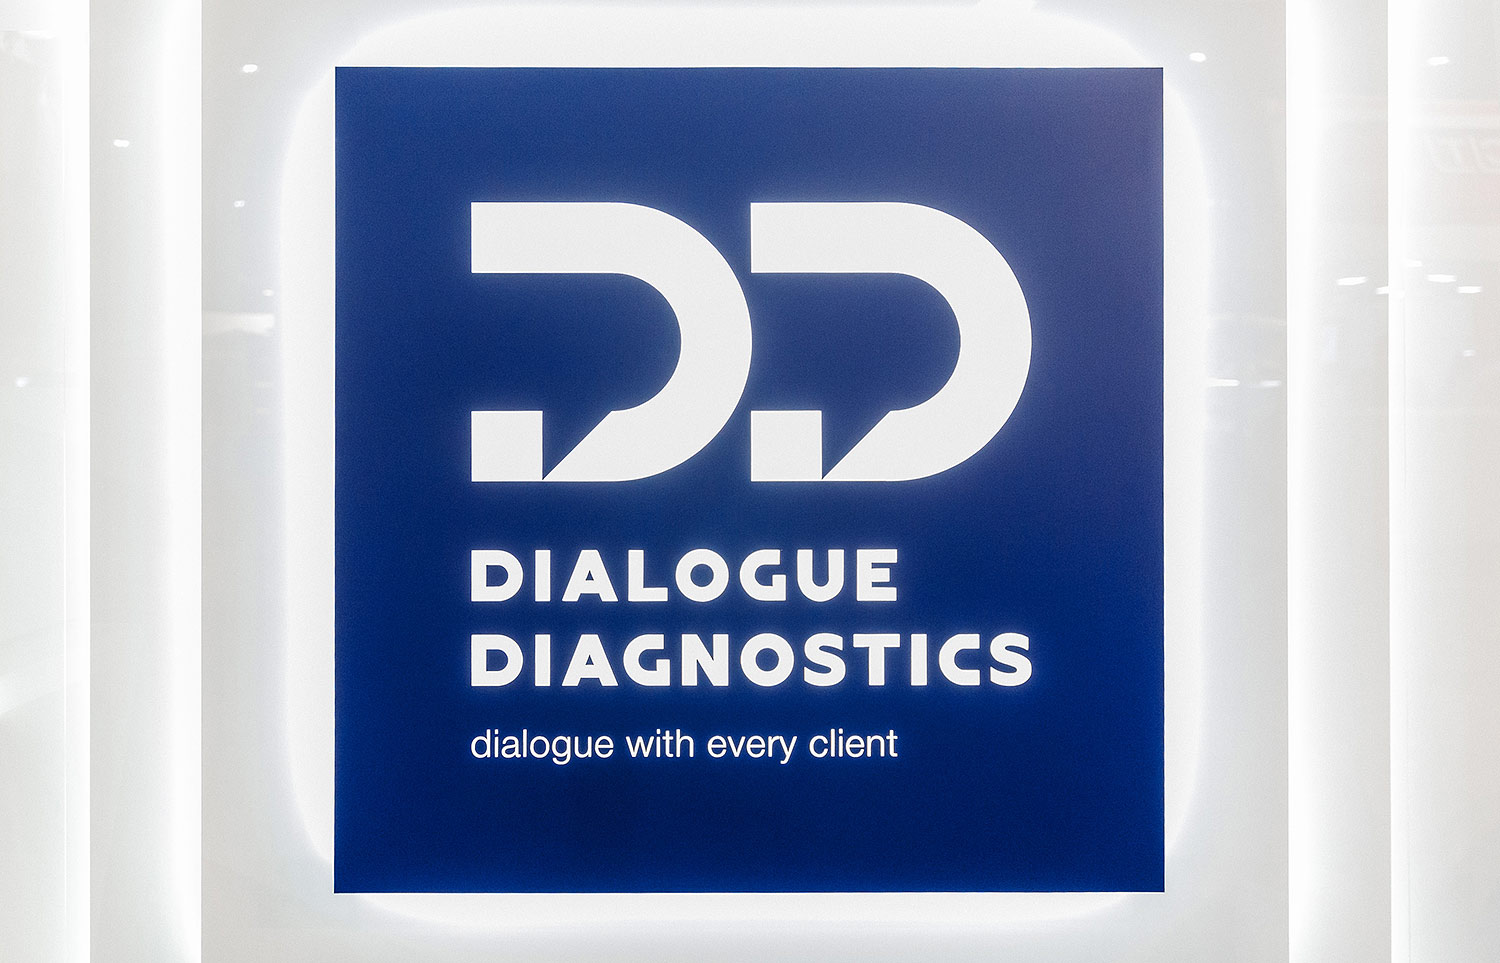 The backlit logo on the Dialogue Diagnostics exhibition stand.